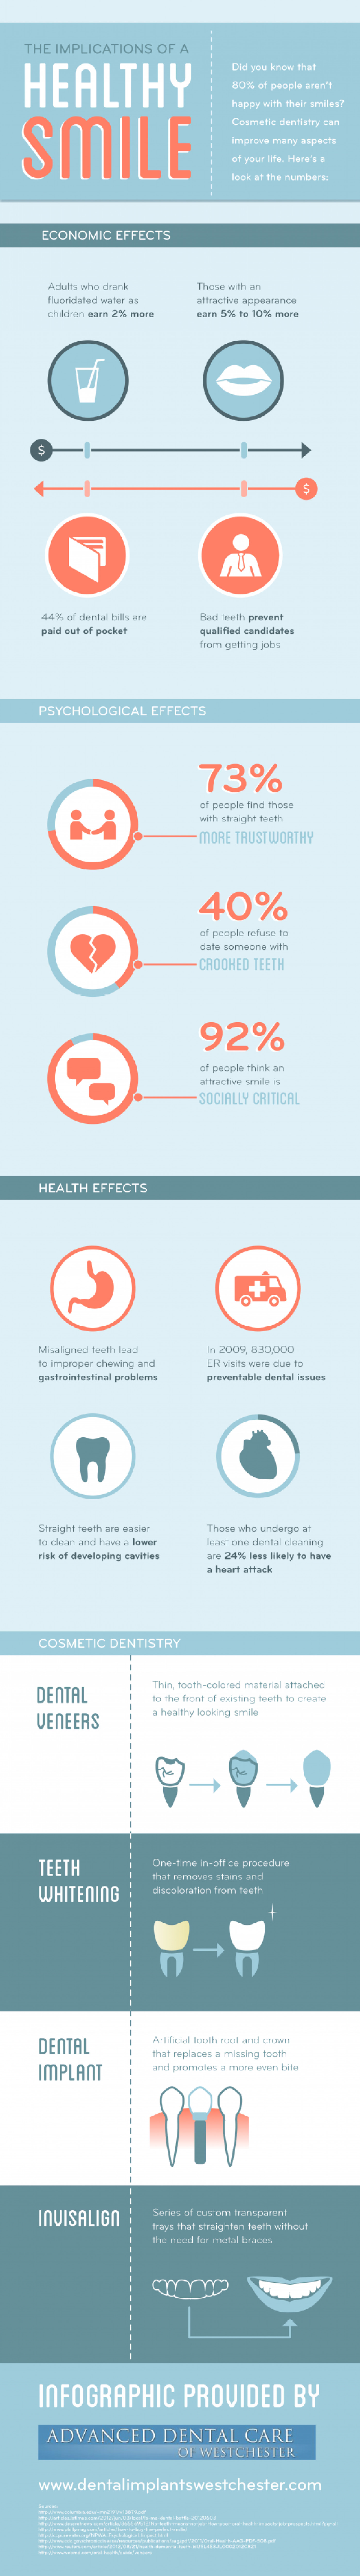 The Implications of a Healthy Smile Infographic